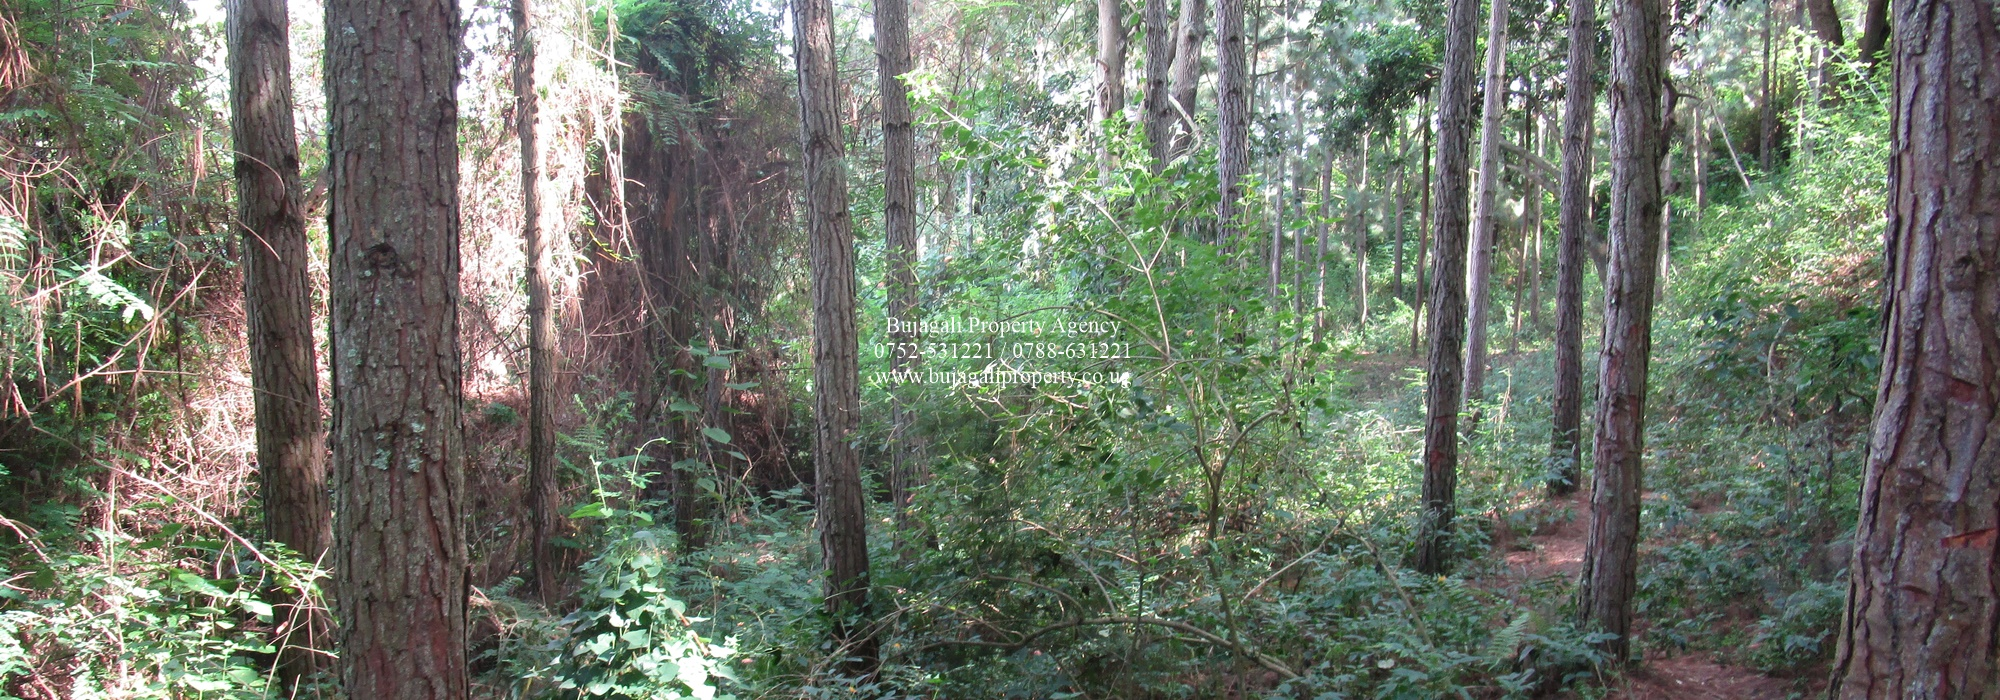 19.5 ACRE LAND WITH PRIVATE FOREST FOR SALE IN JINJA CITY